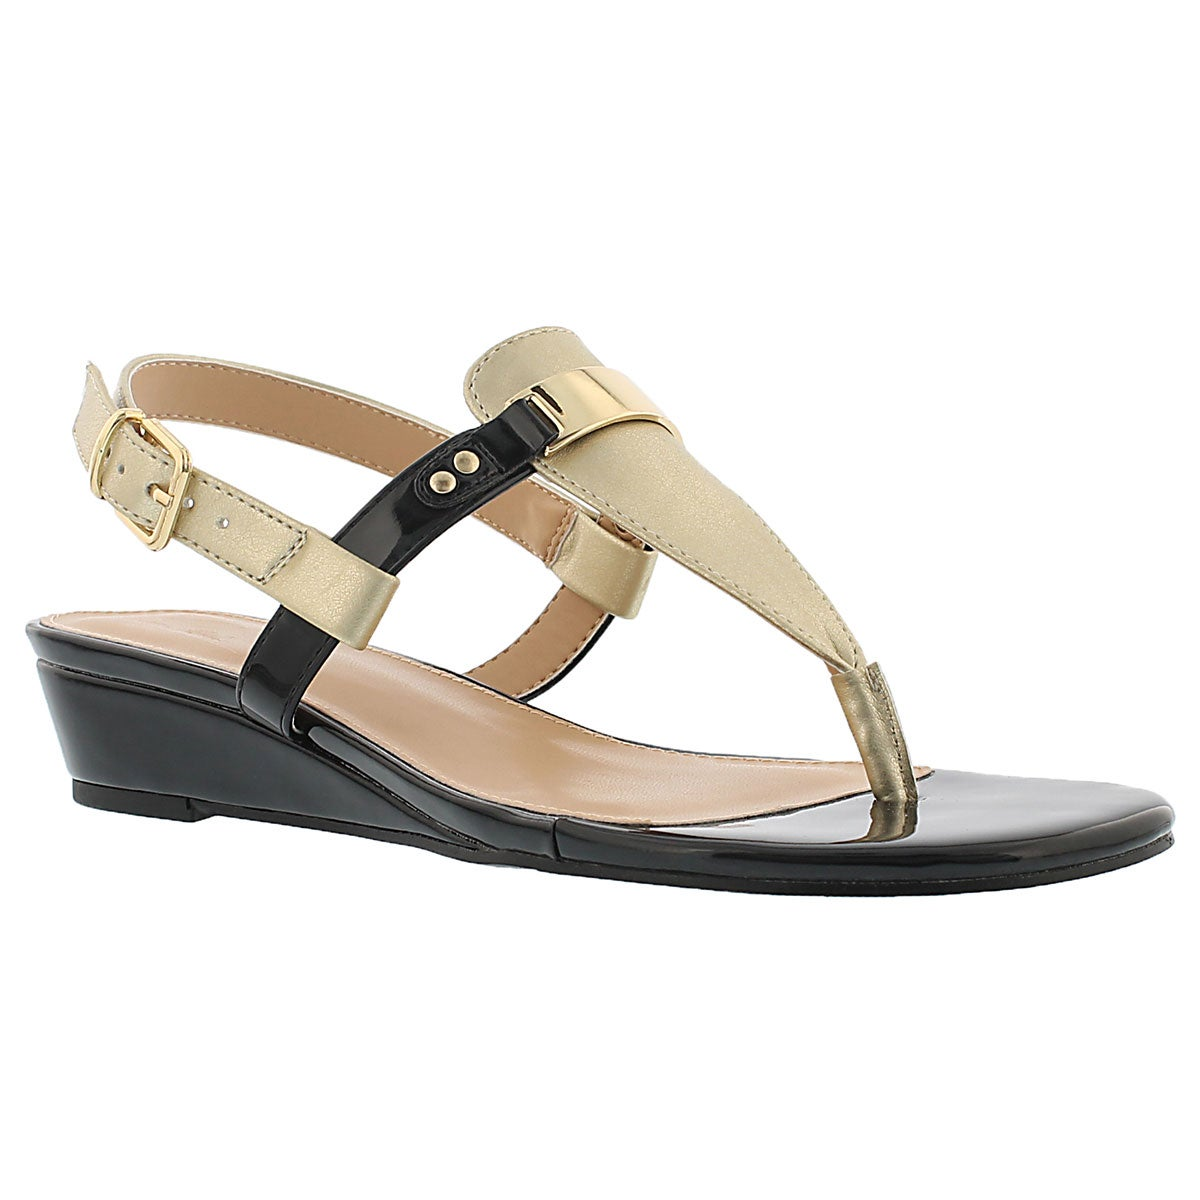 Women's ESTELLE champagne wedge thong sandals